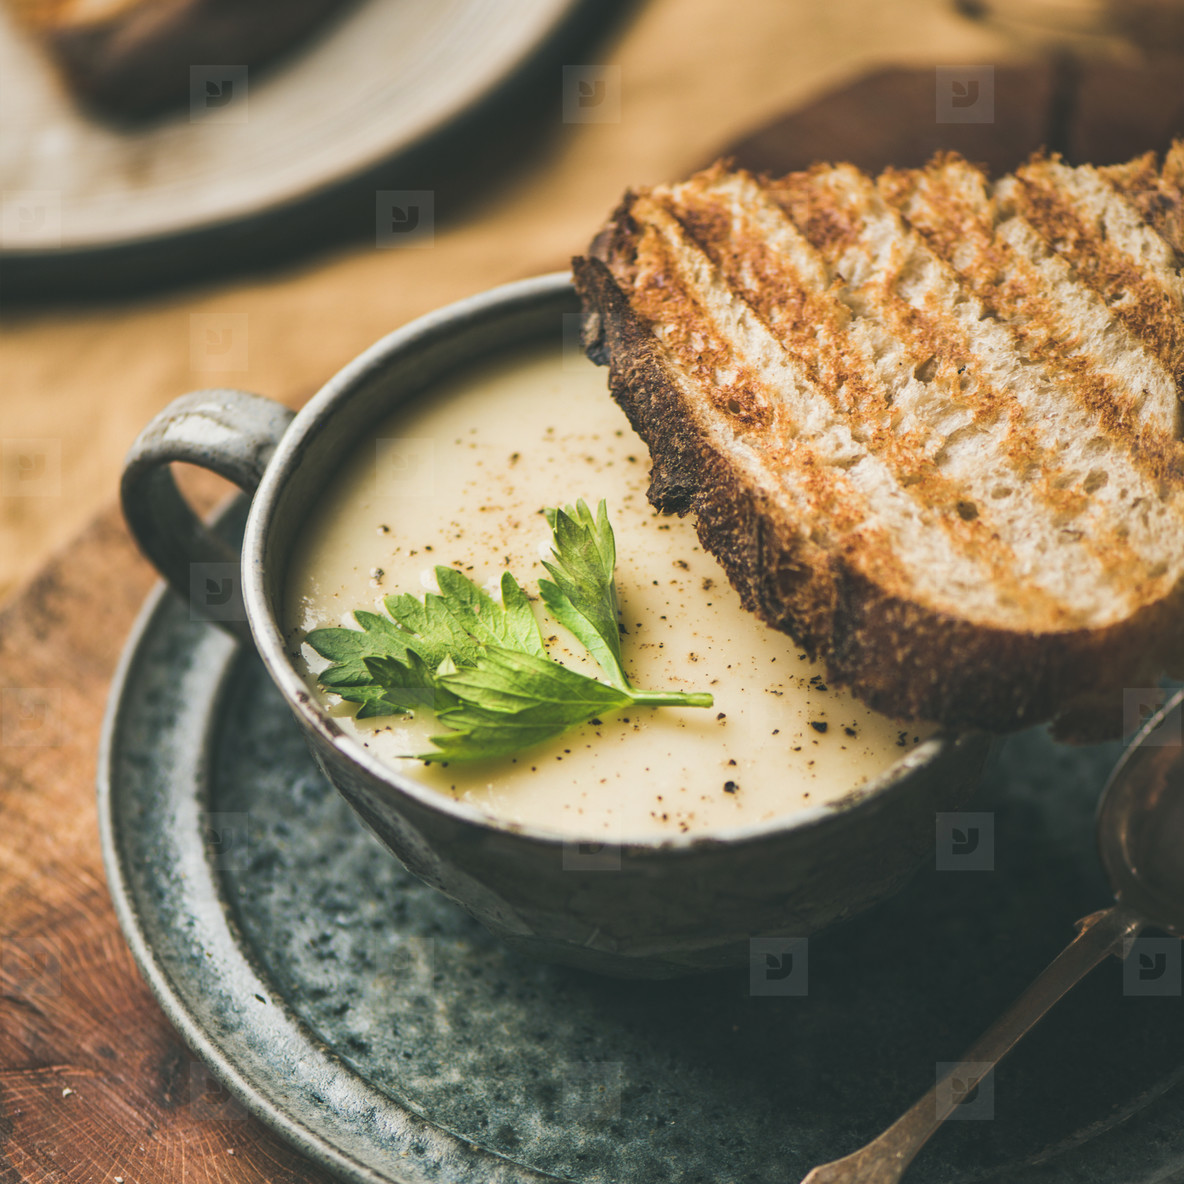 Celery cream soup and toast over linen tablecloth  square crop